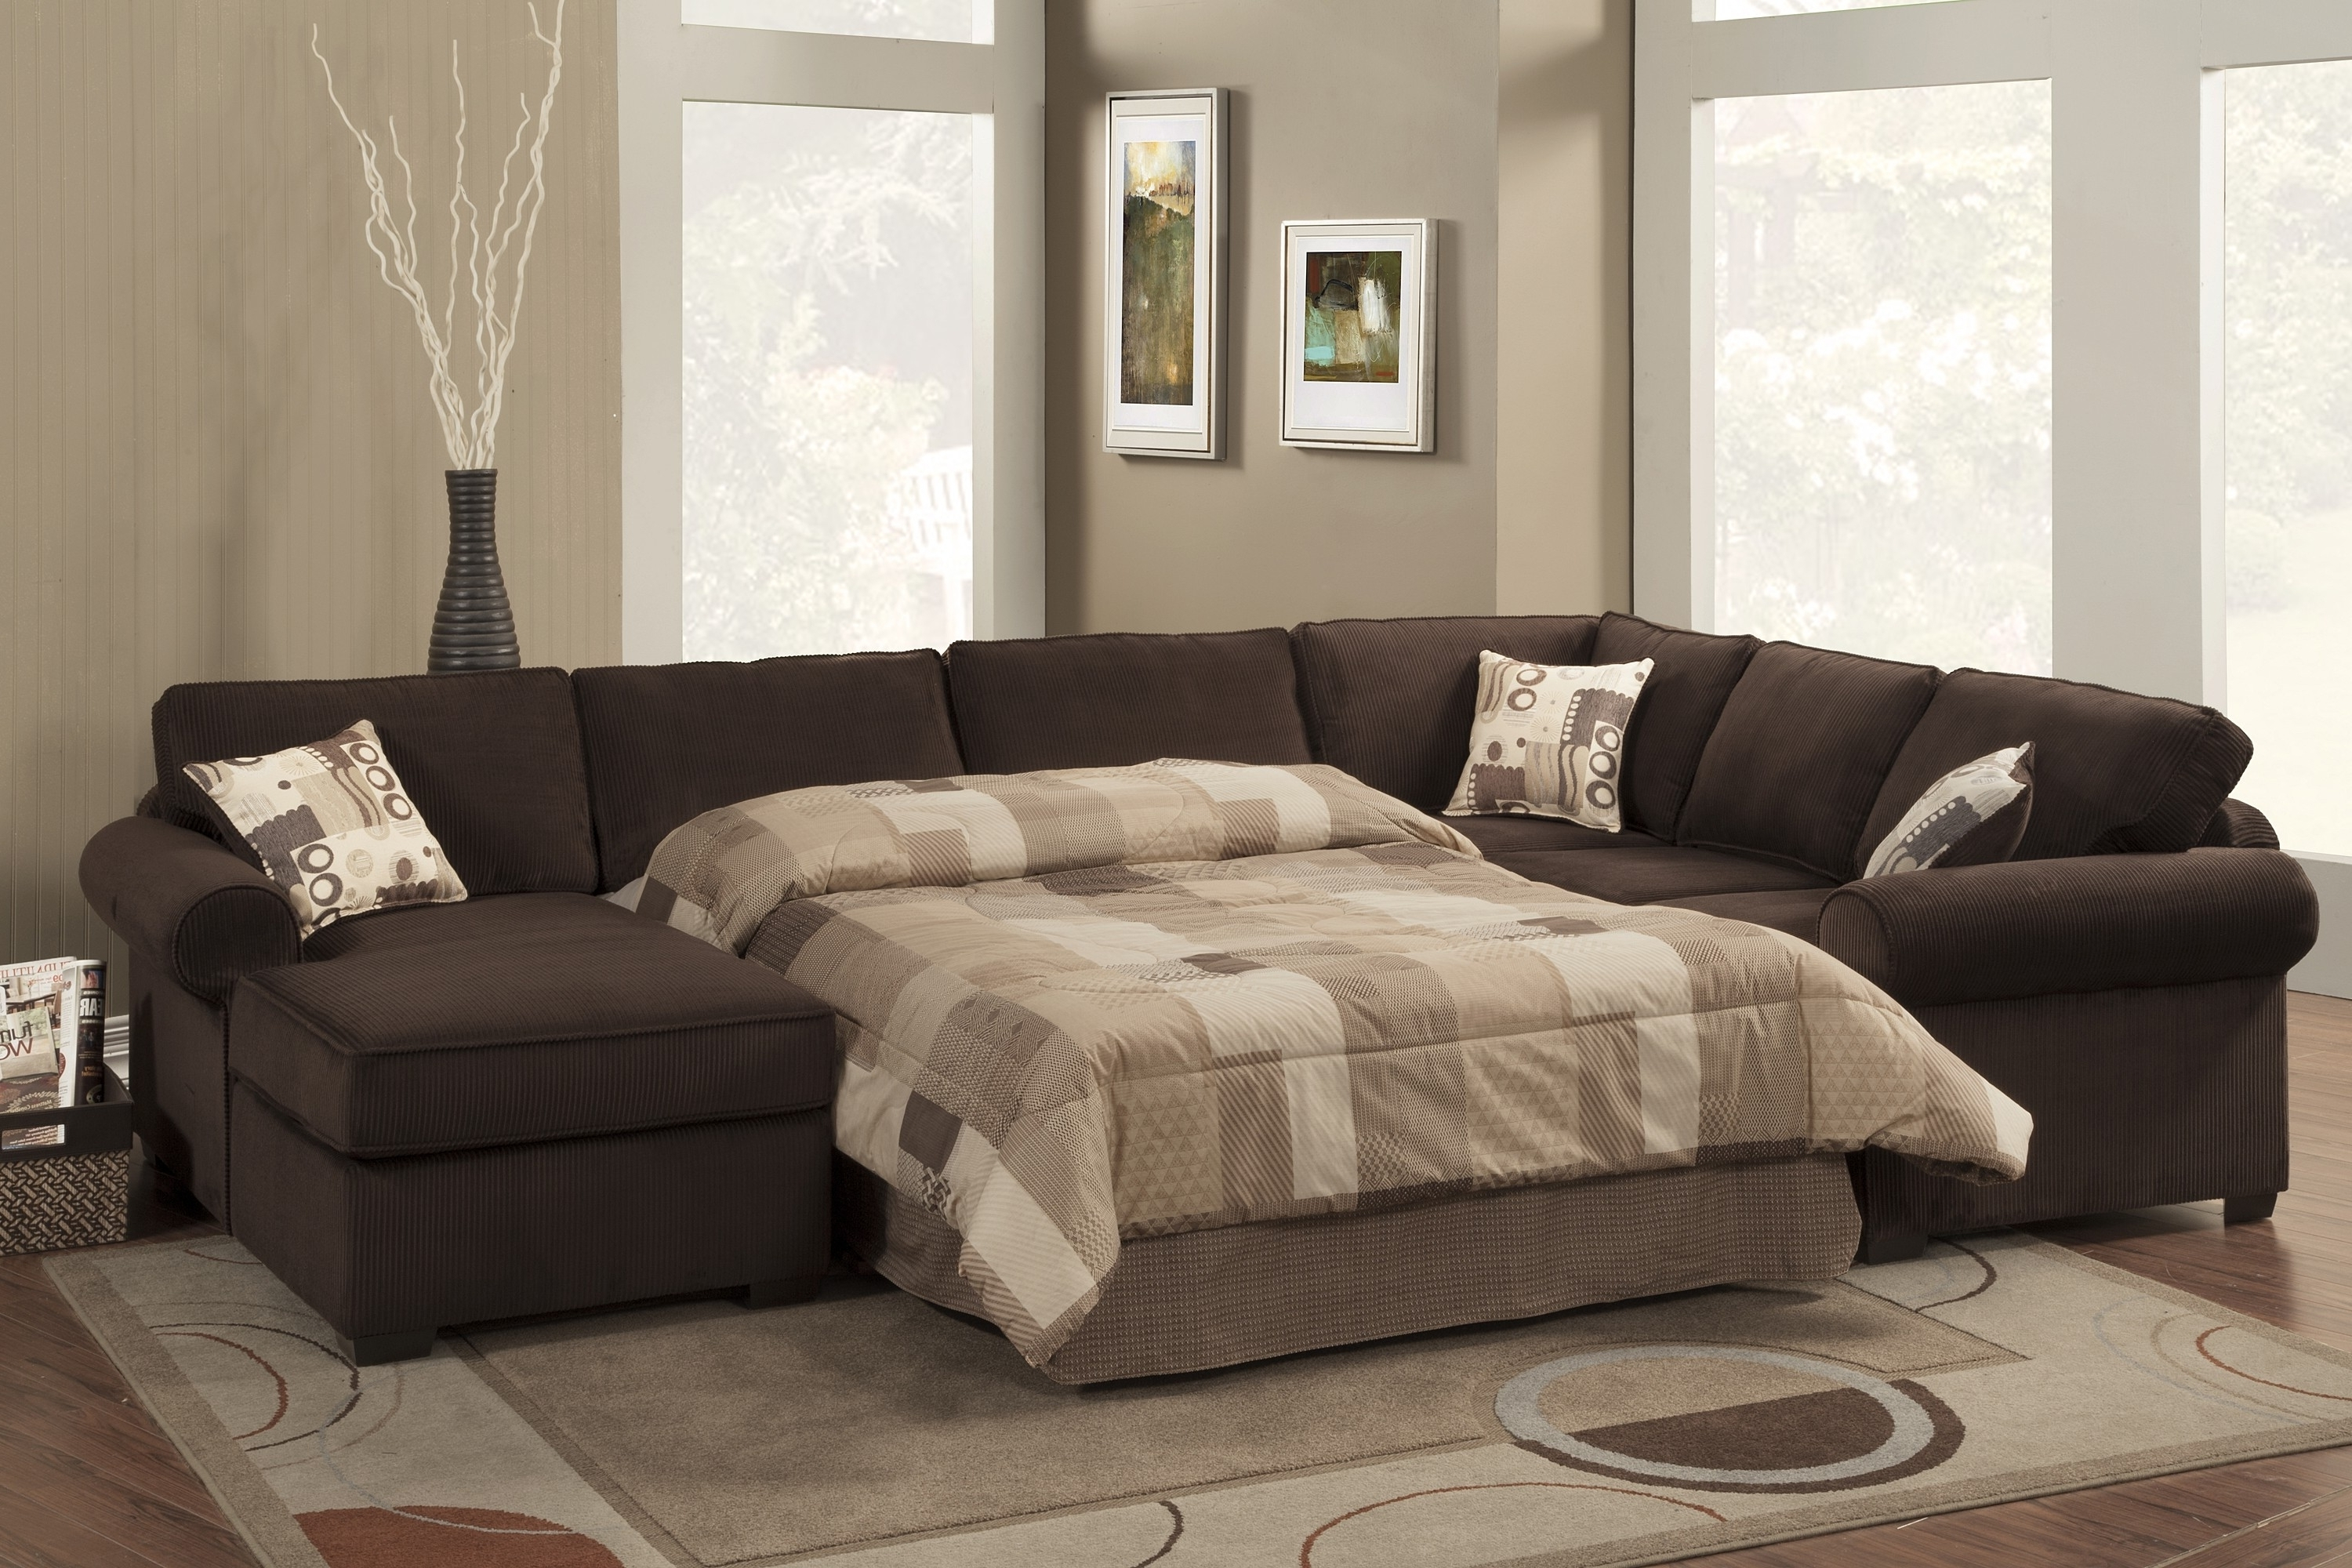 Best And Newest Sectional Sleeper Sofa Nj • Sectional Sofa For Nj Sectional Sofas (View 14 of 15)